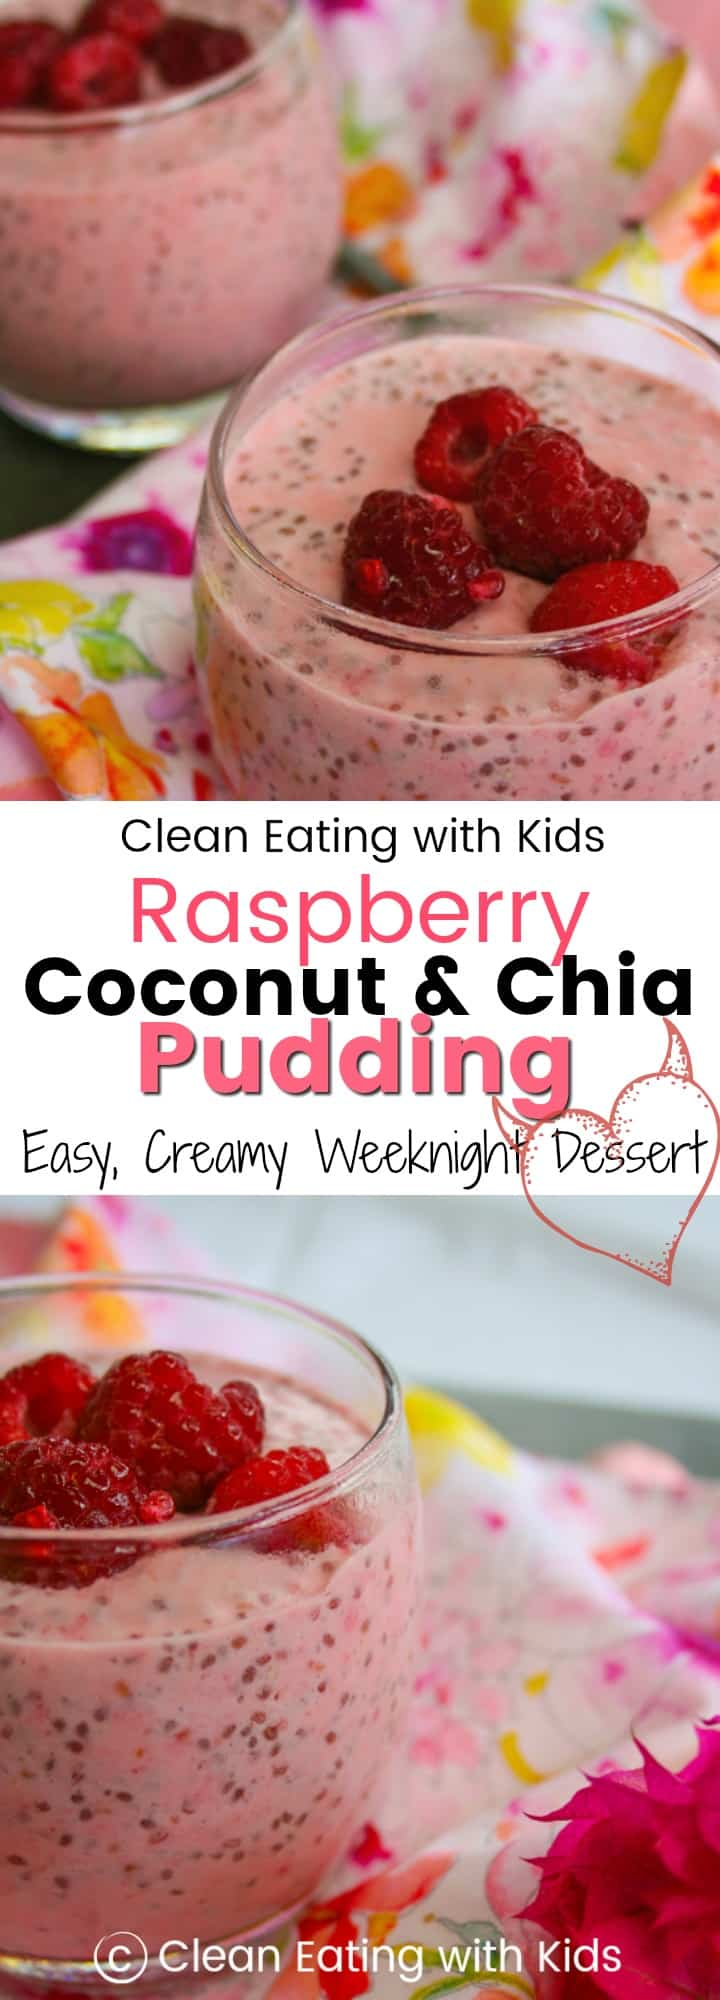 My kids go crazy for this Raspberry, Coconut and Chia Seed Pudding! It's thick, creamy & really easy to make. #cleaneating #sugarfree #chiapudding